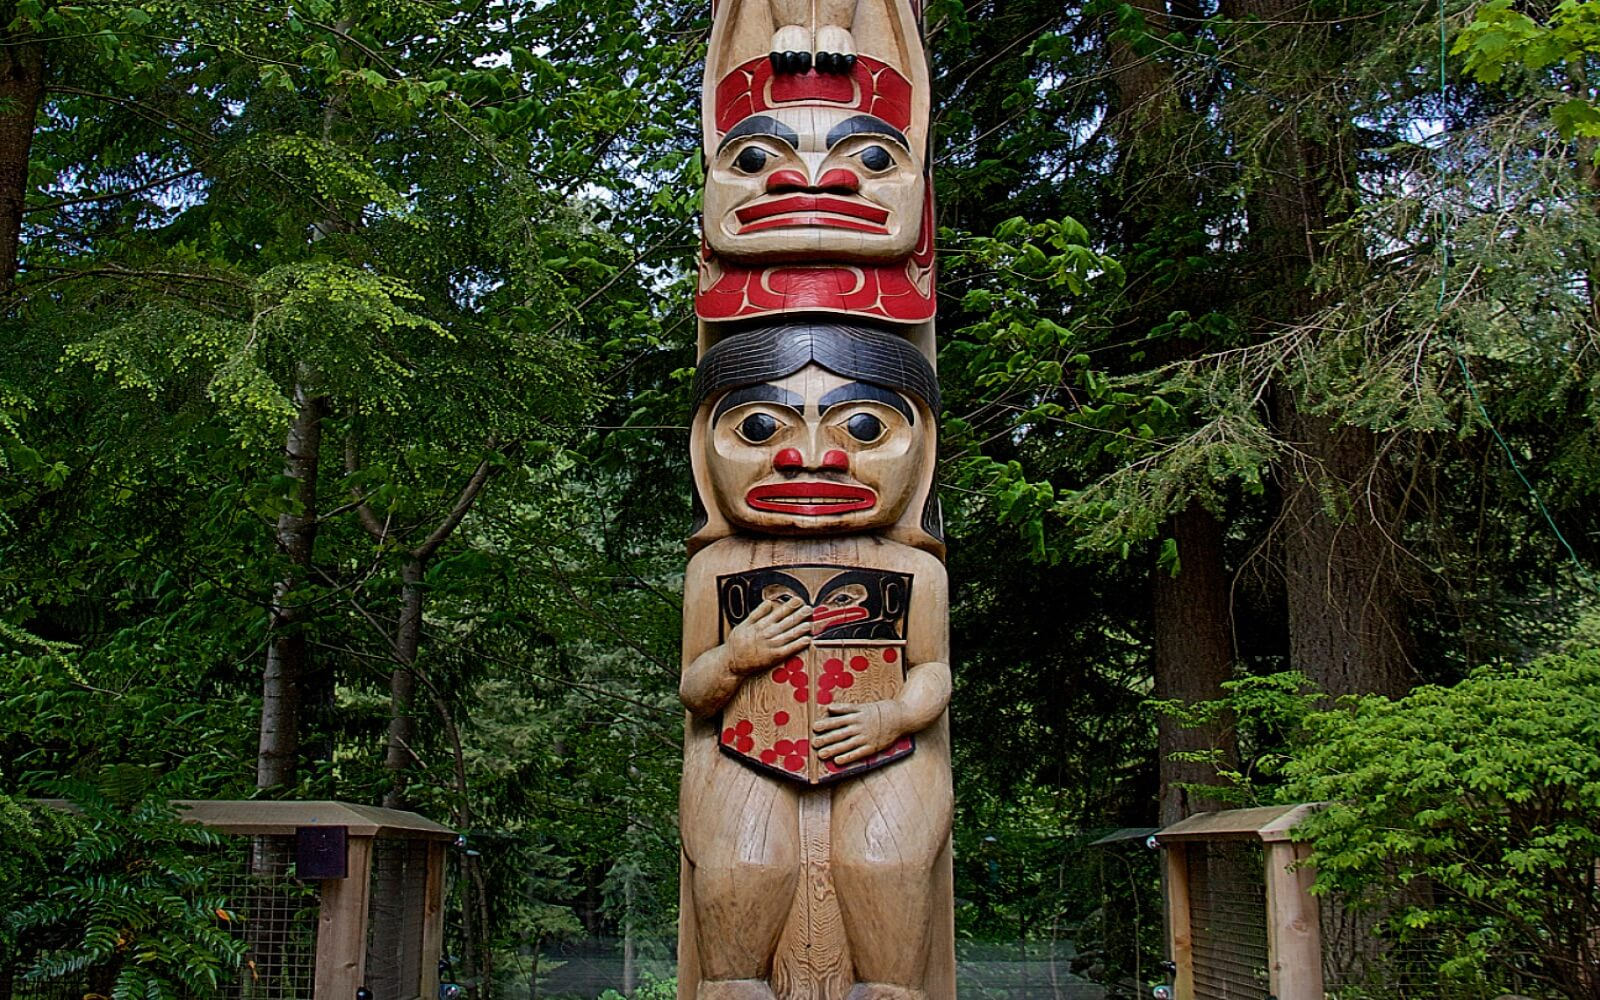 A totem pole at the Capilano Suspension Bridge